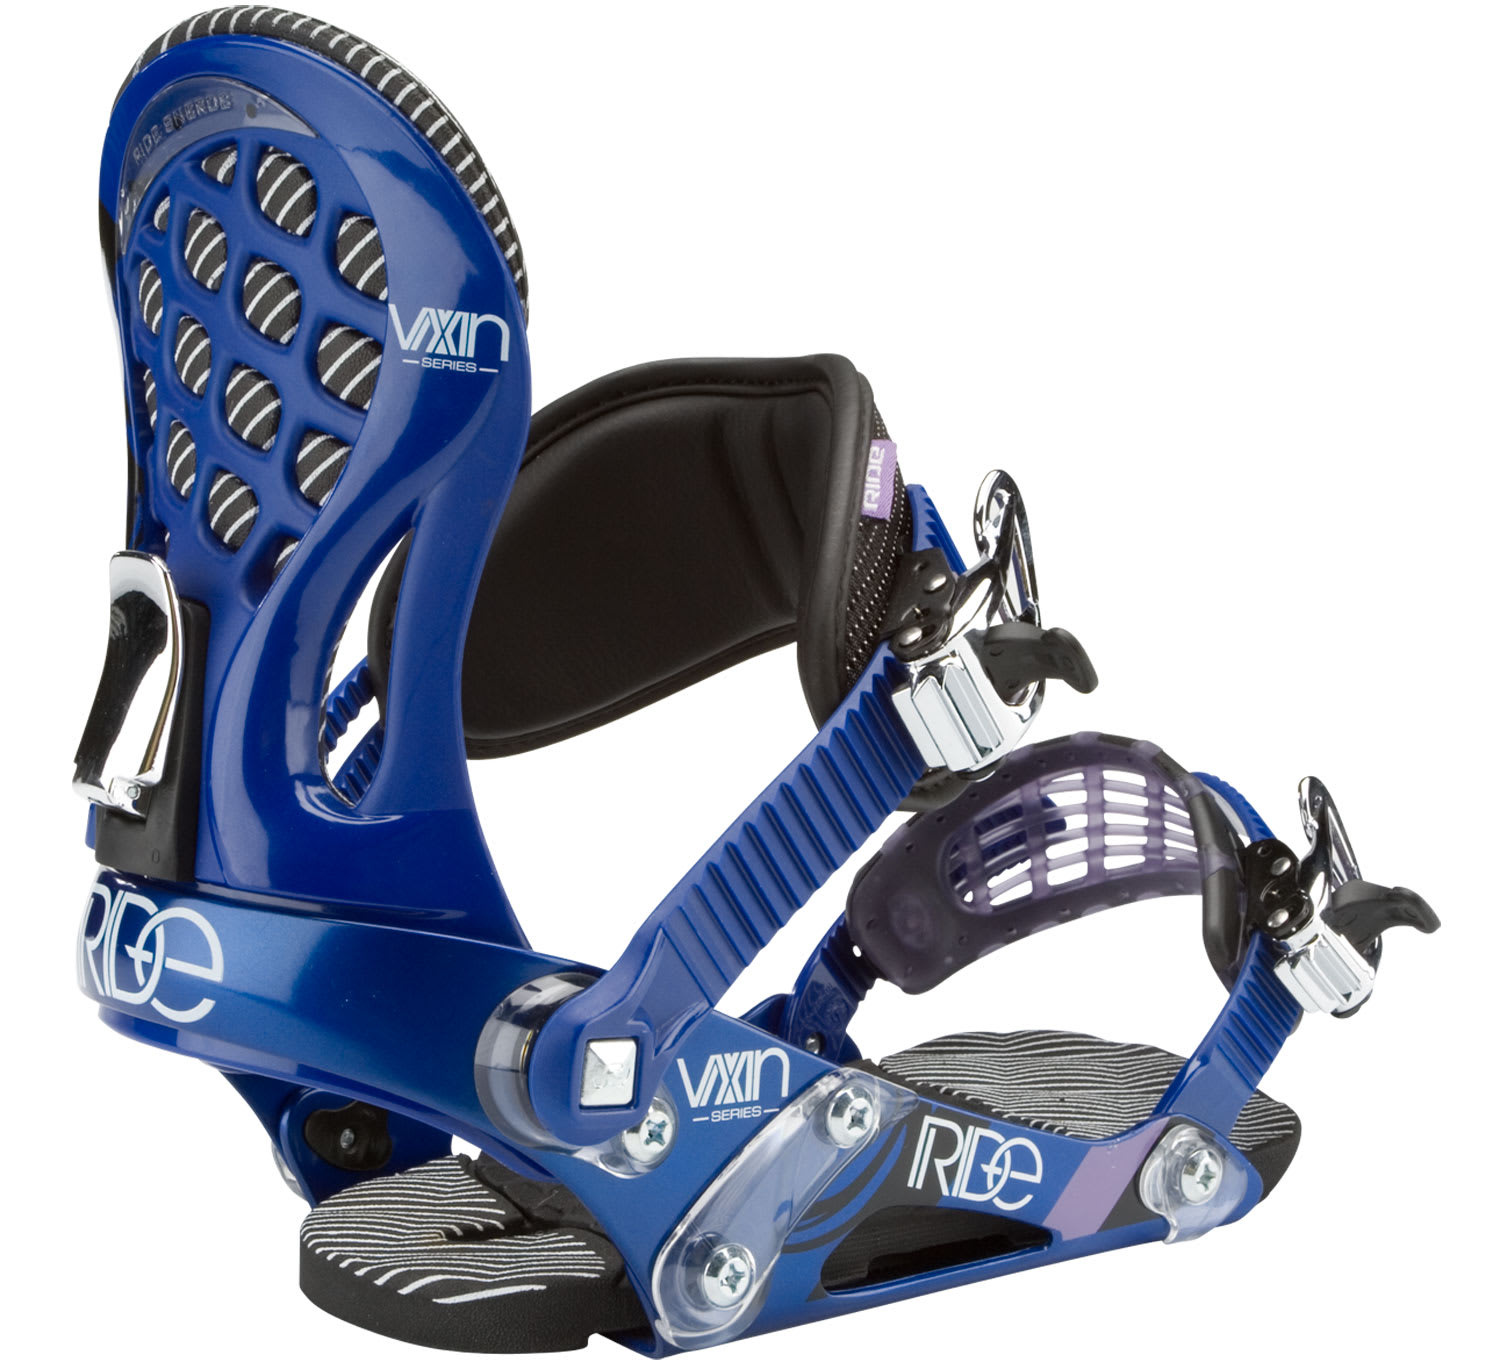 Shop for Ride VXN Snowboard Bindings Royal - Women's